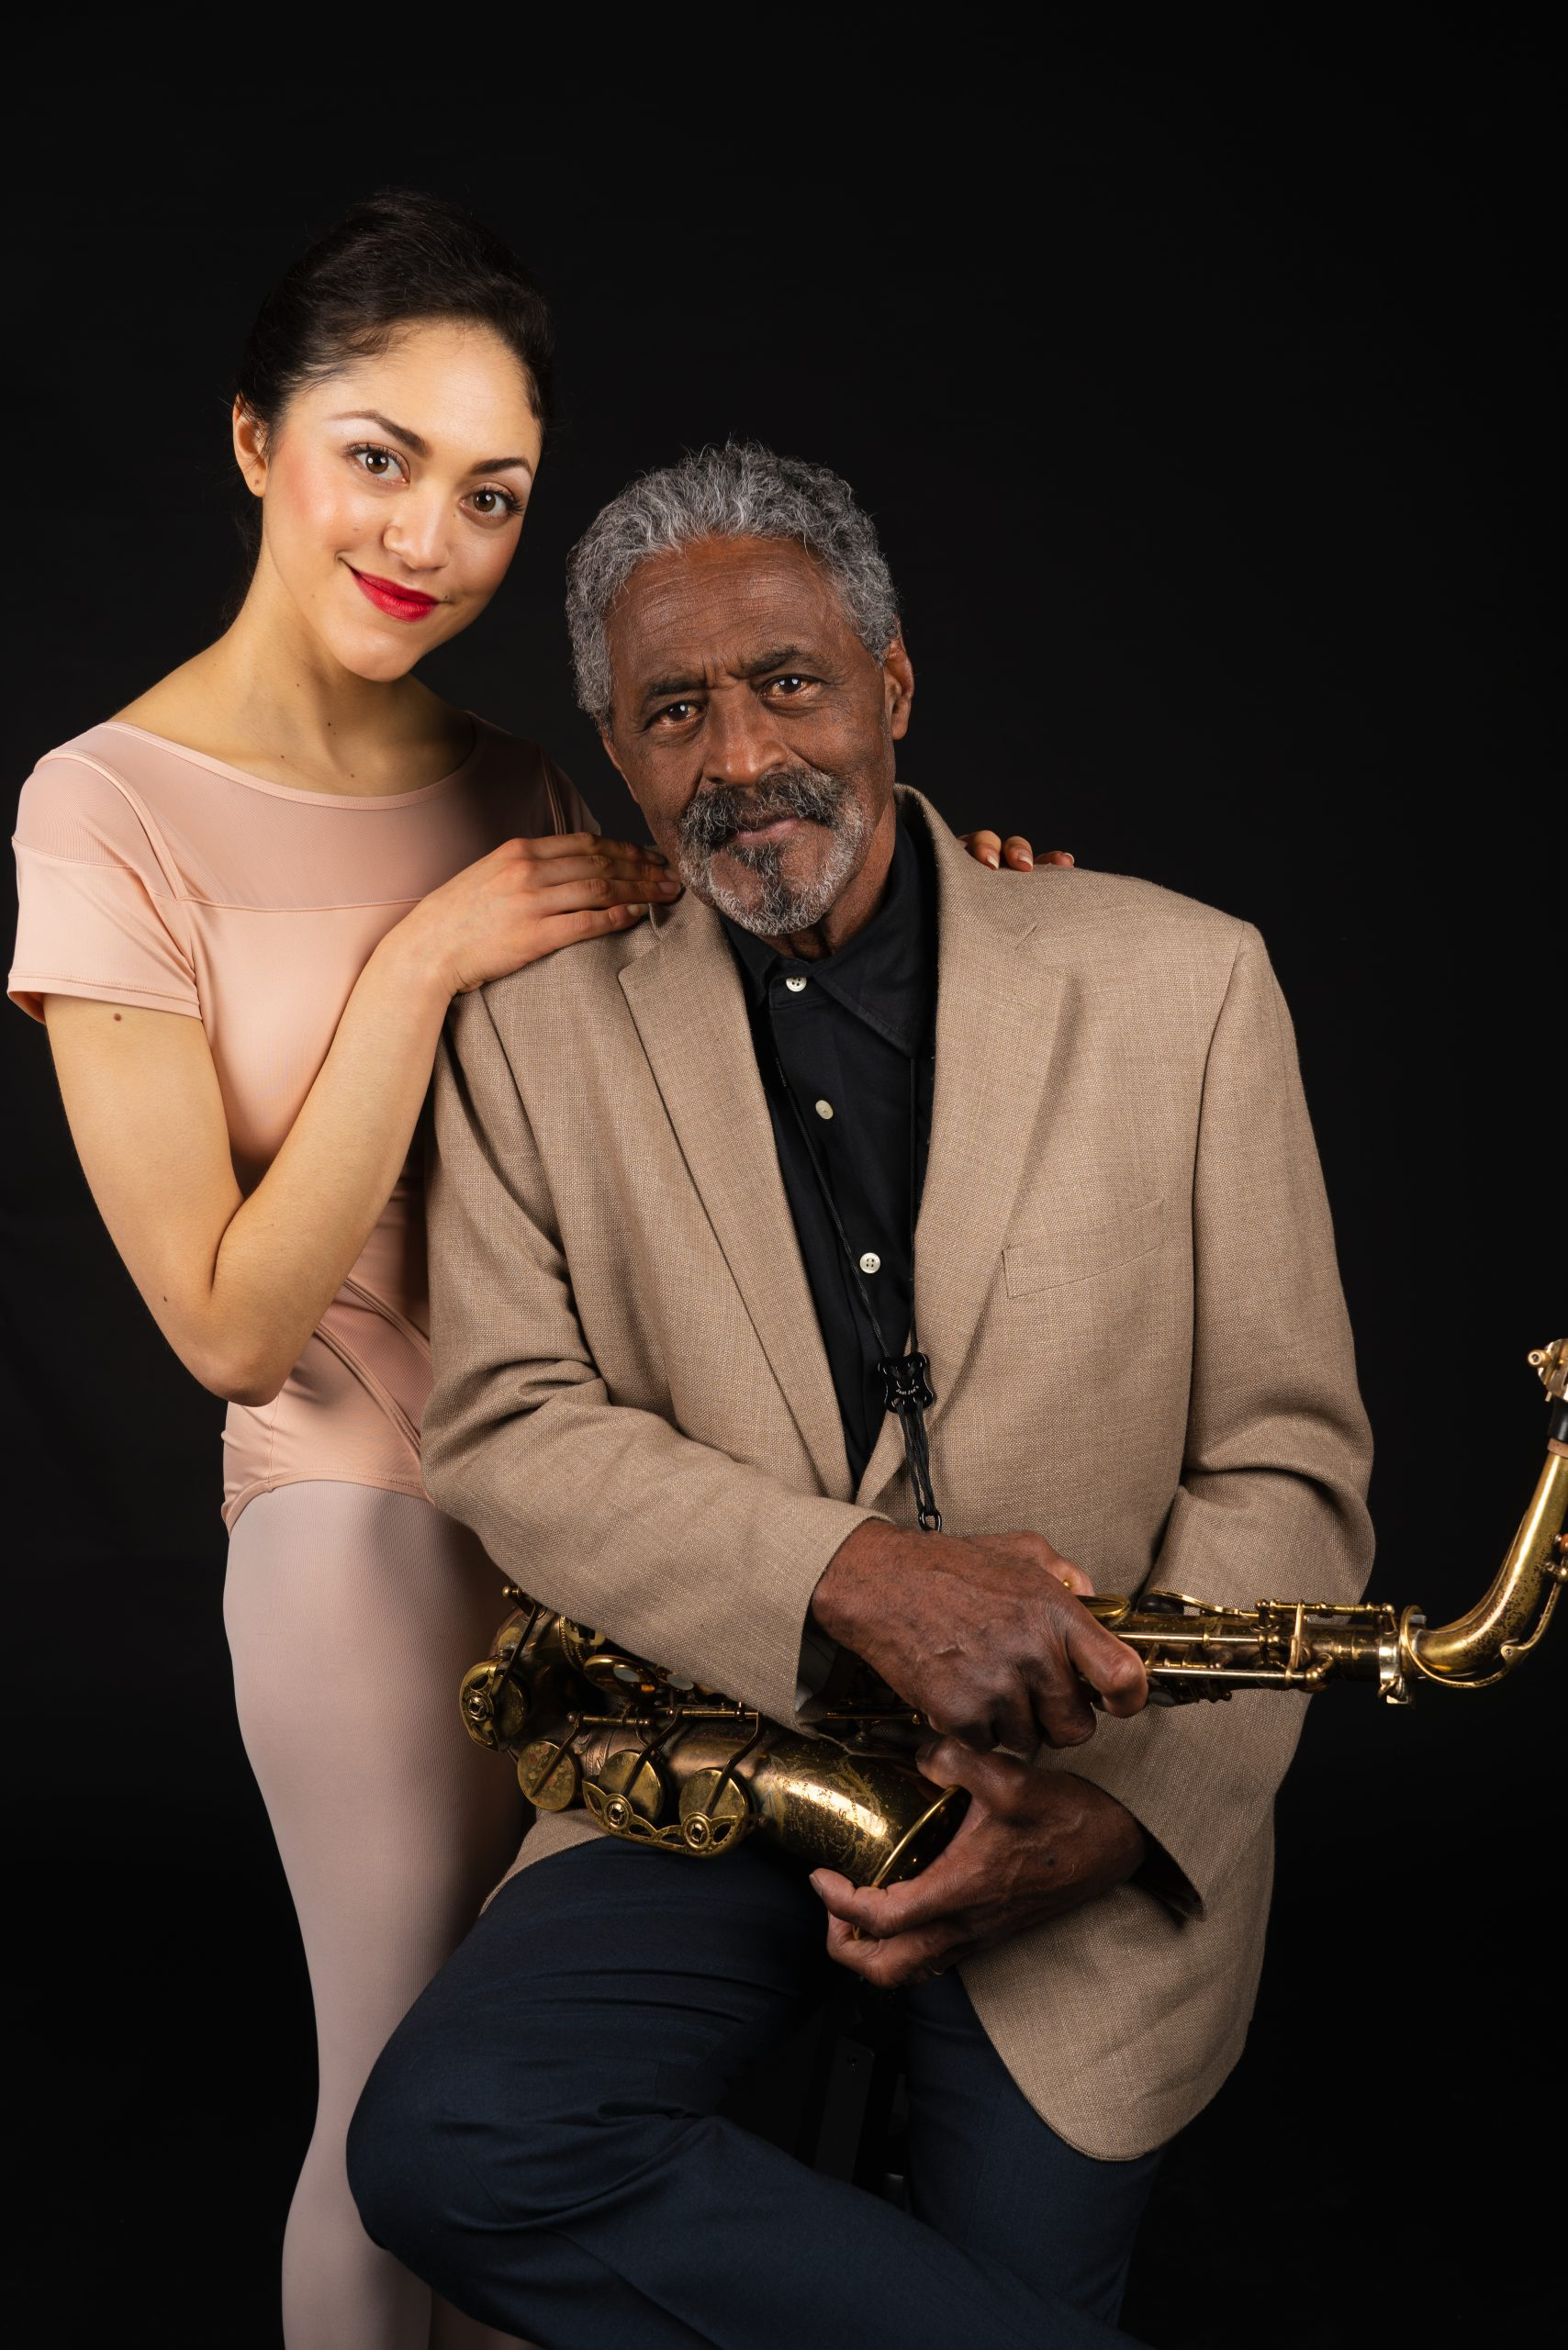 REVIEW: Bebop Saxophonist Charles McPherson with San Diego Ballet For Jazz Dance Suites – GLIDE MAGAZINE